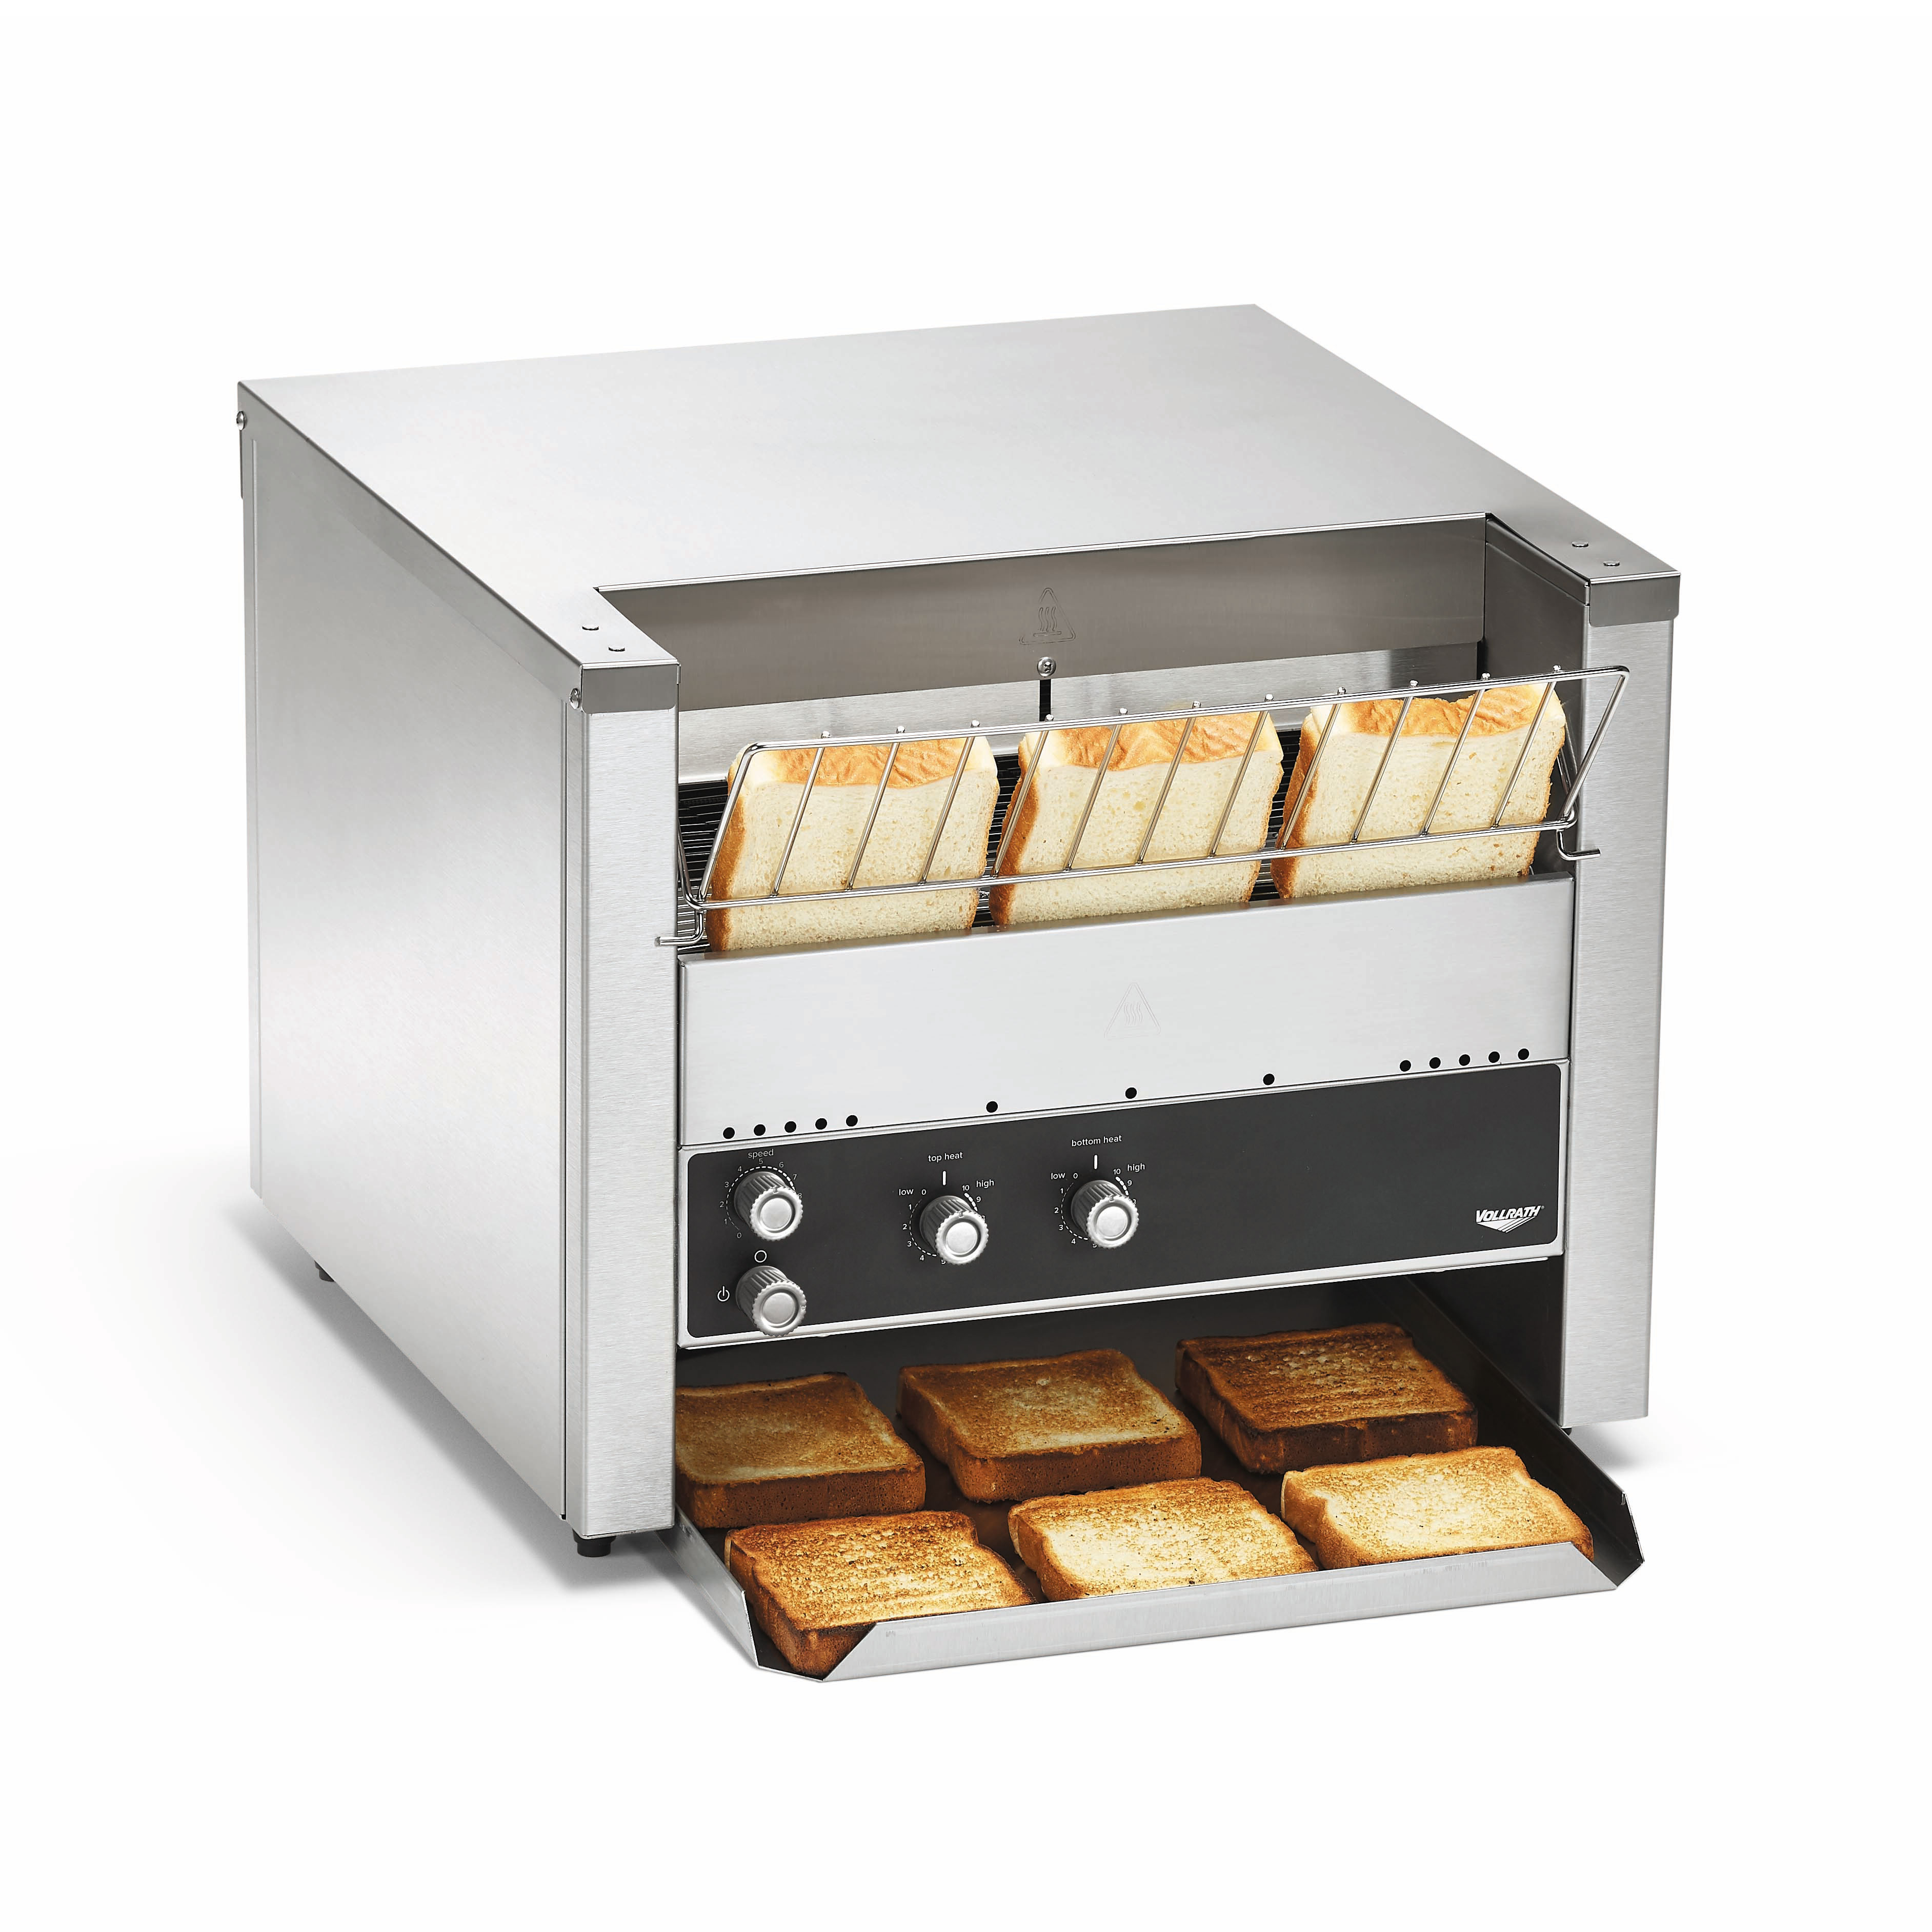 Vollrath CT4H-208950 toaster, conveyor type